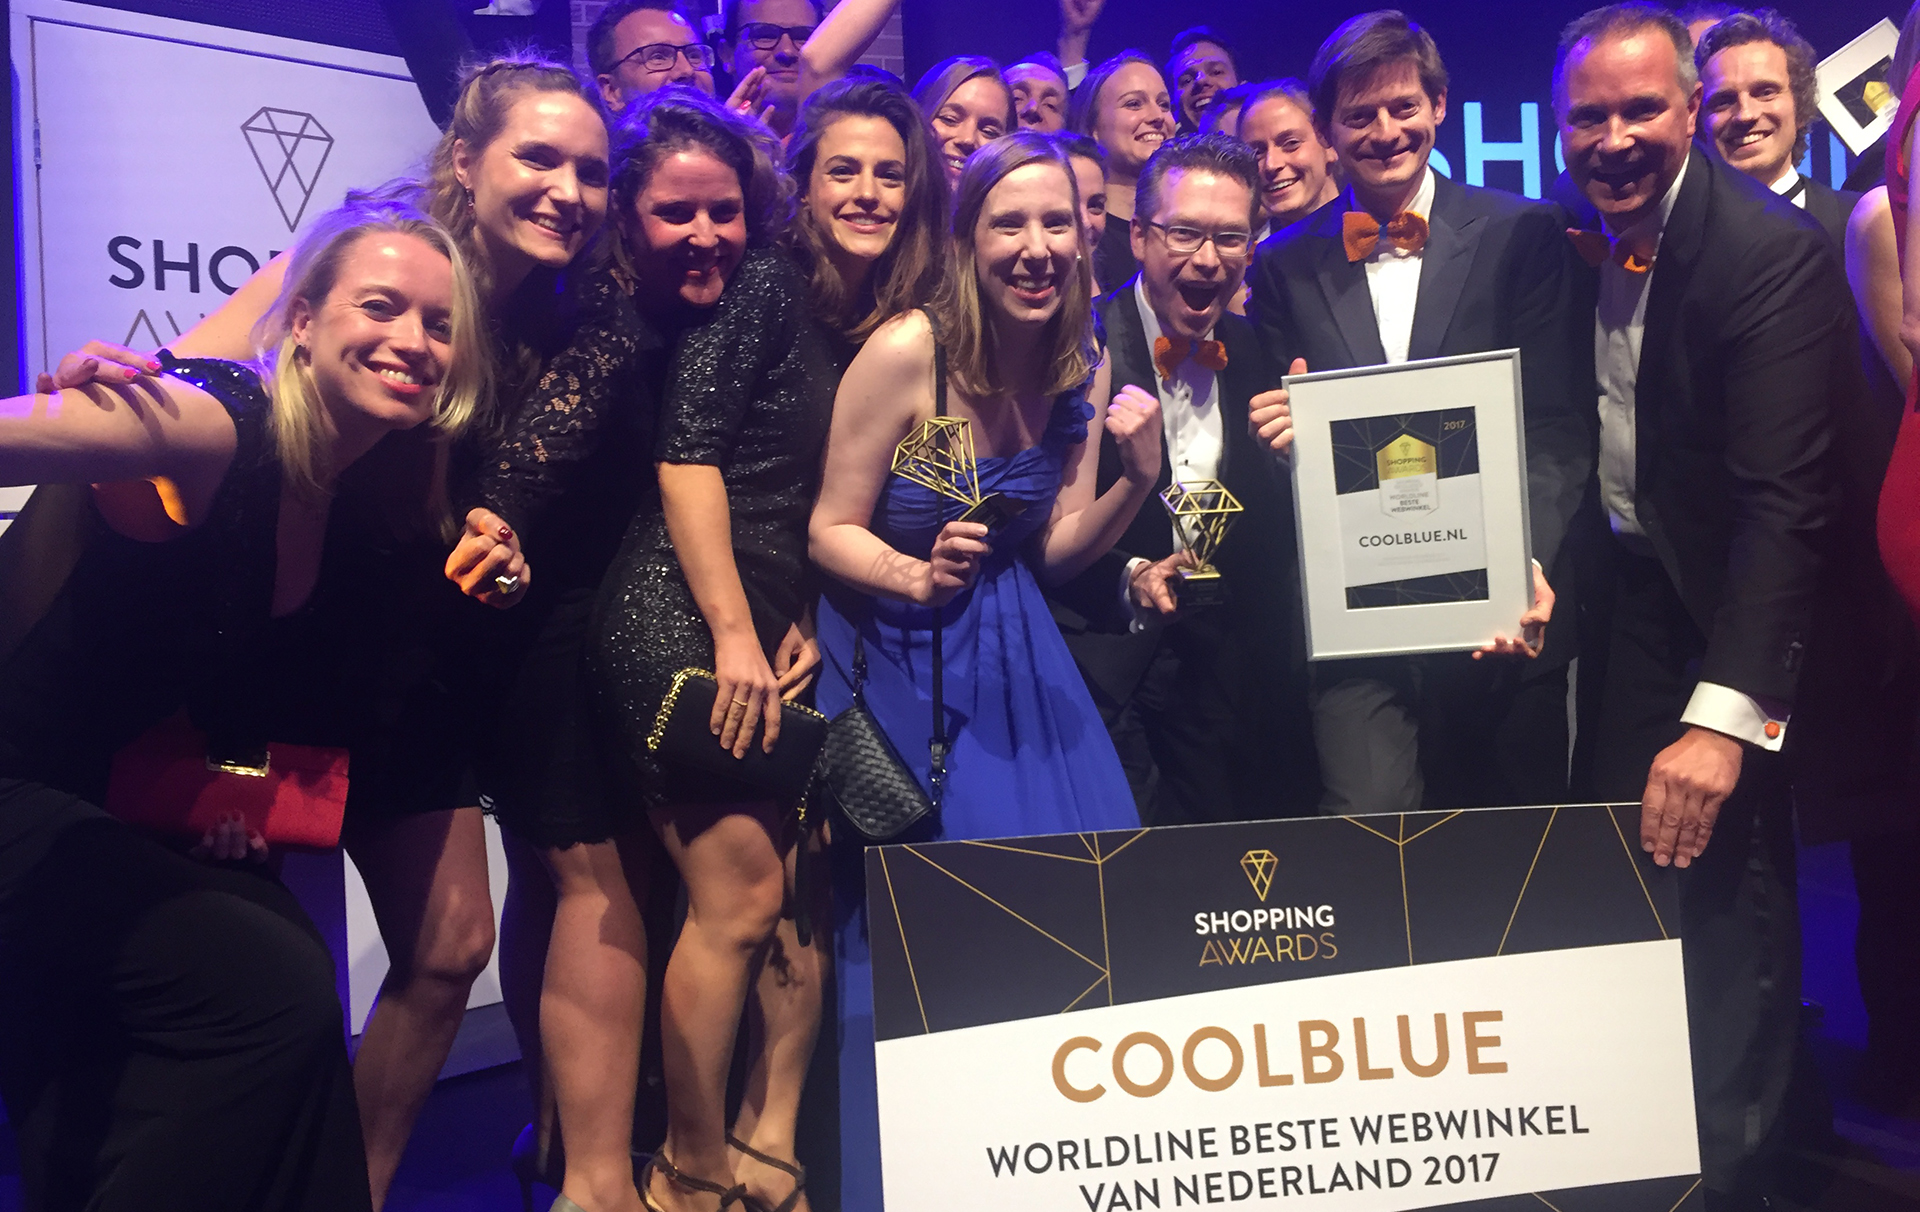 Coolblue wint 3 awards tijdens de Shopping Awards